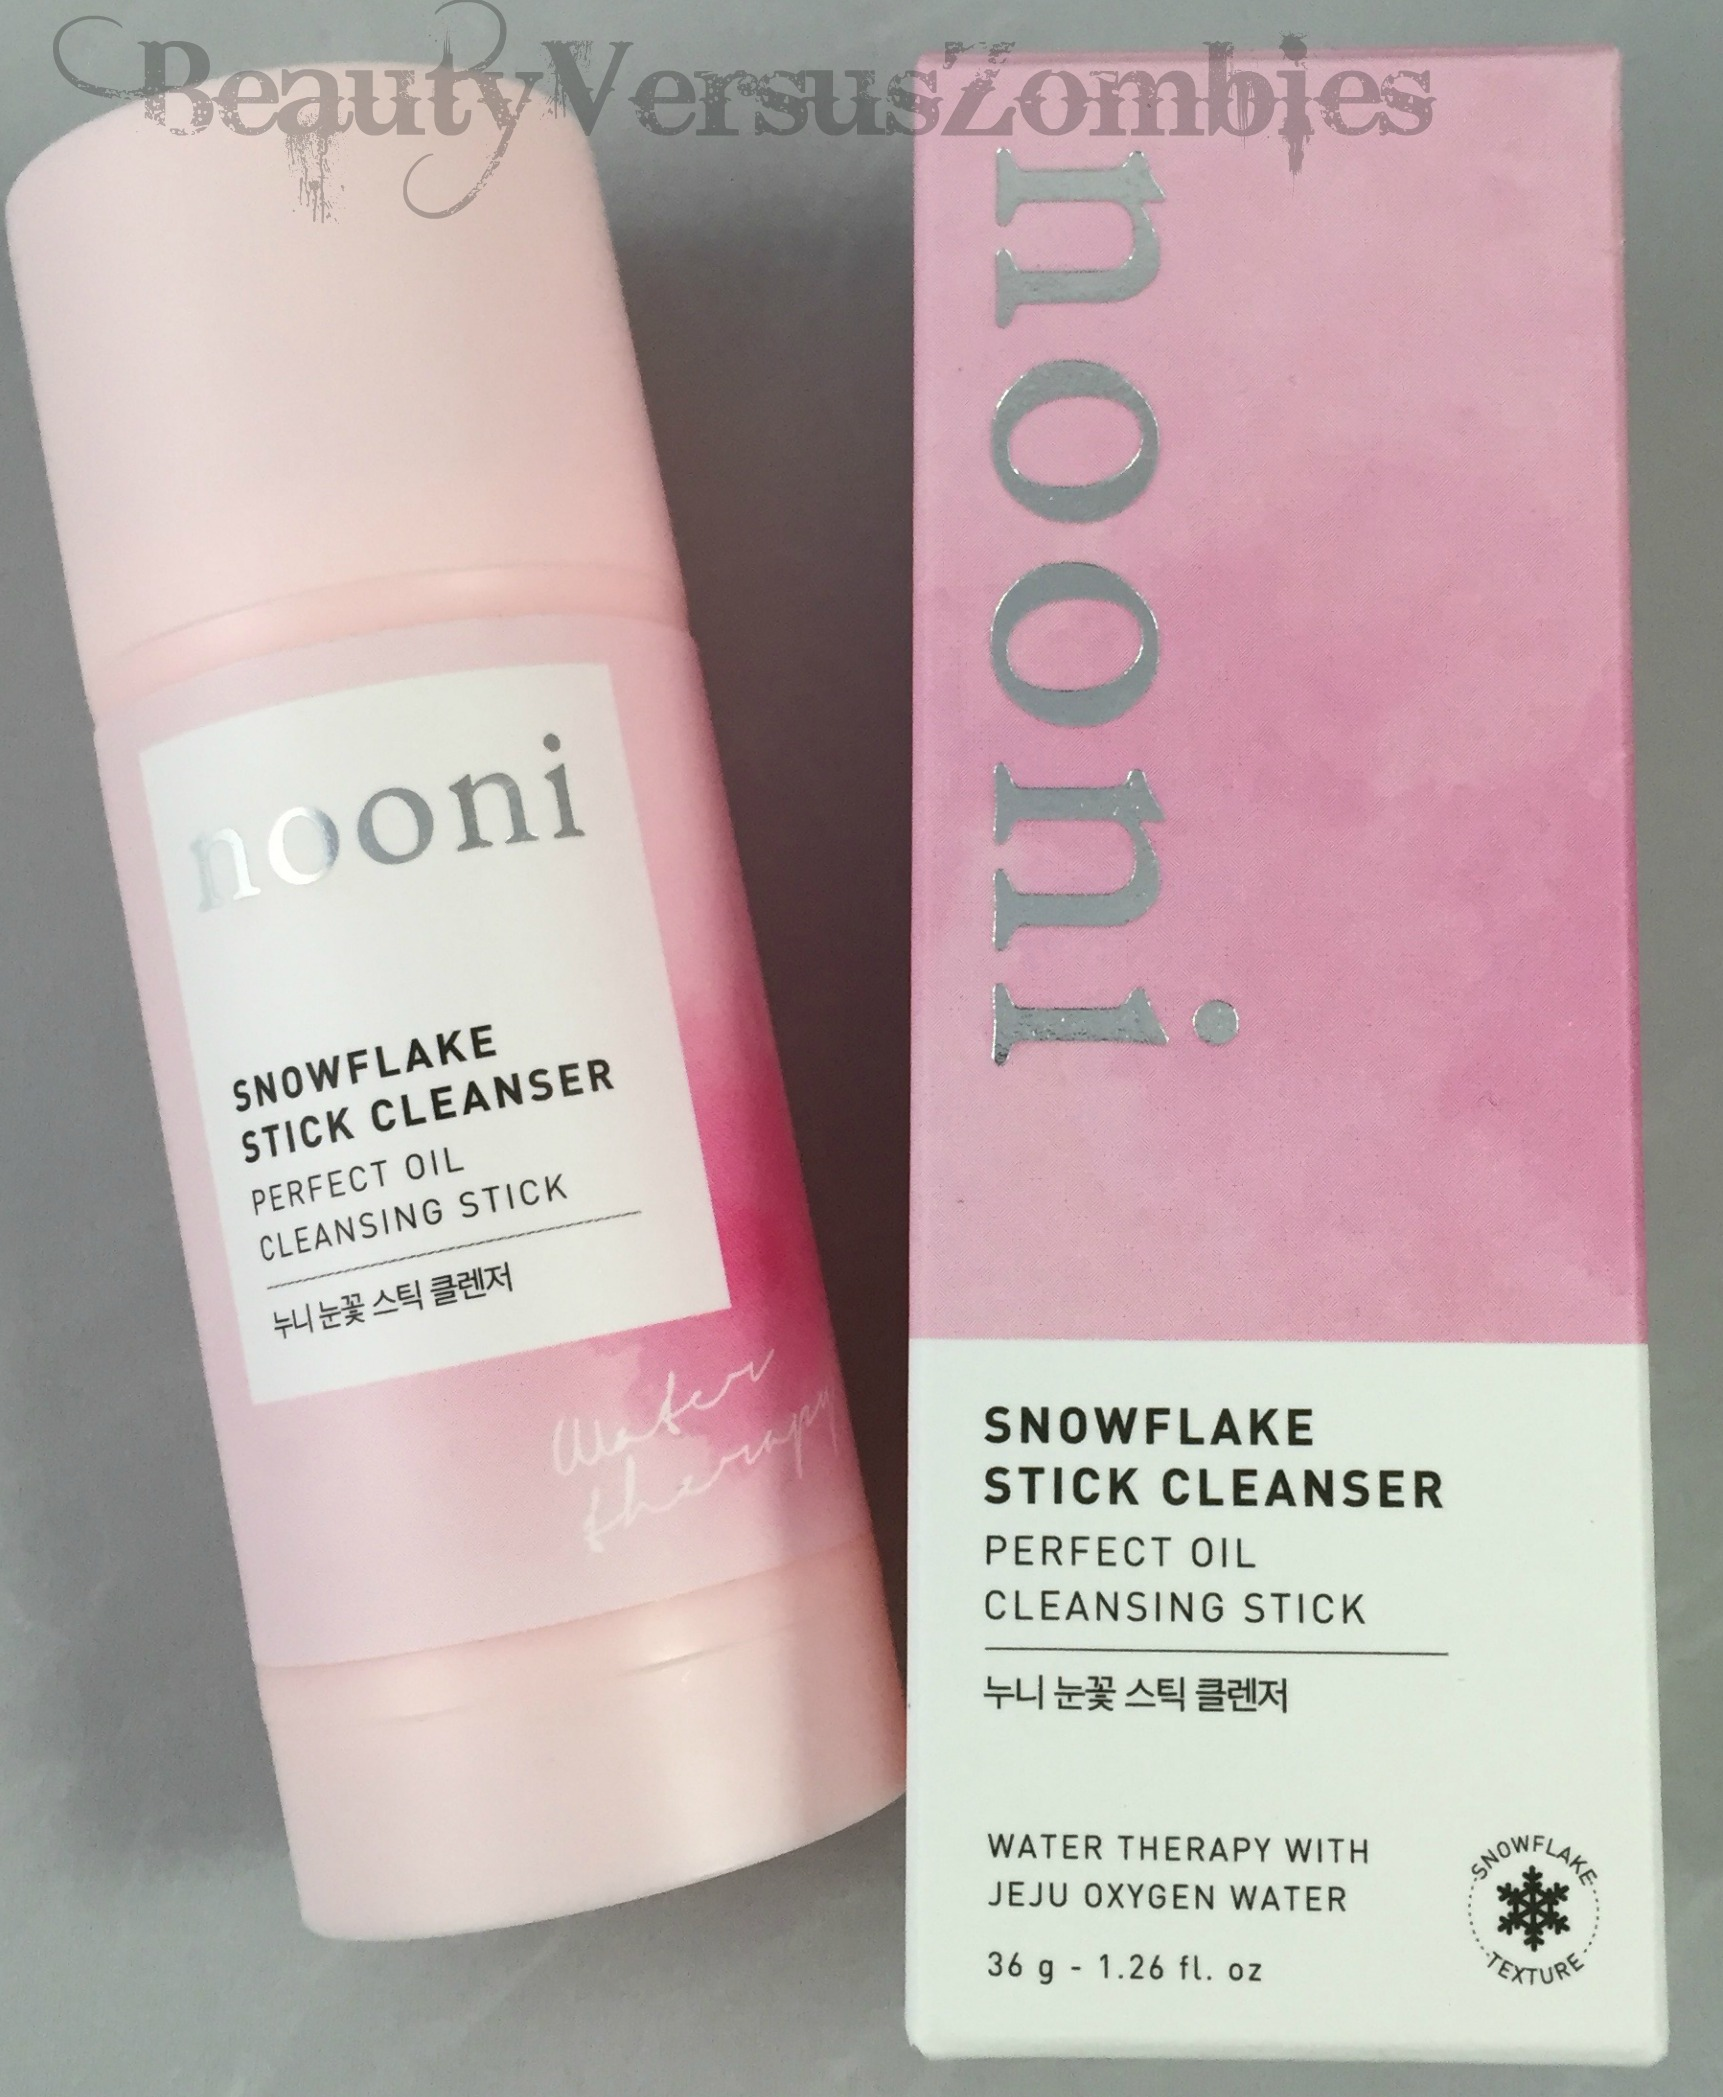 Everything On A Stick: Cleansing Sticks